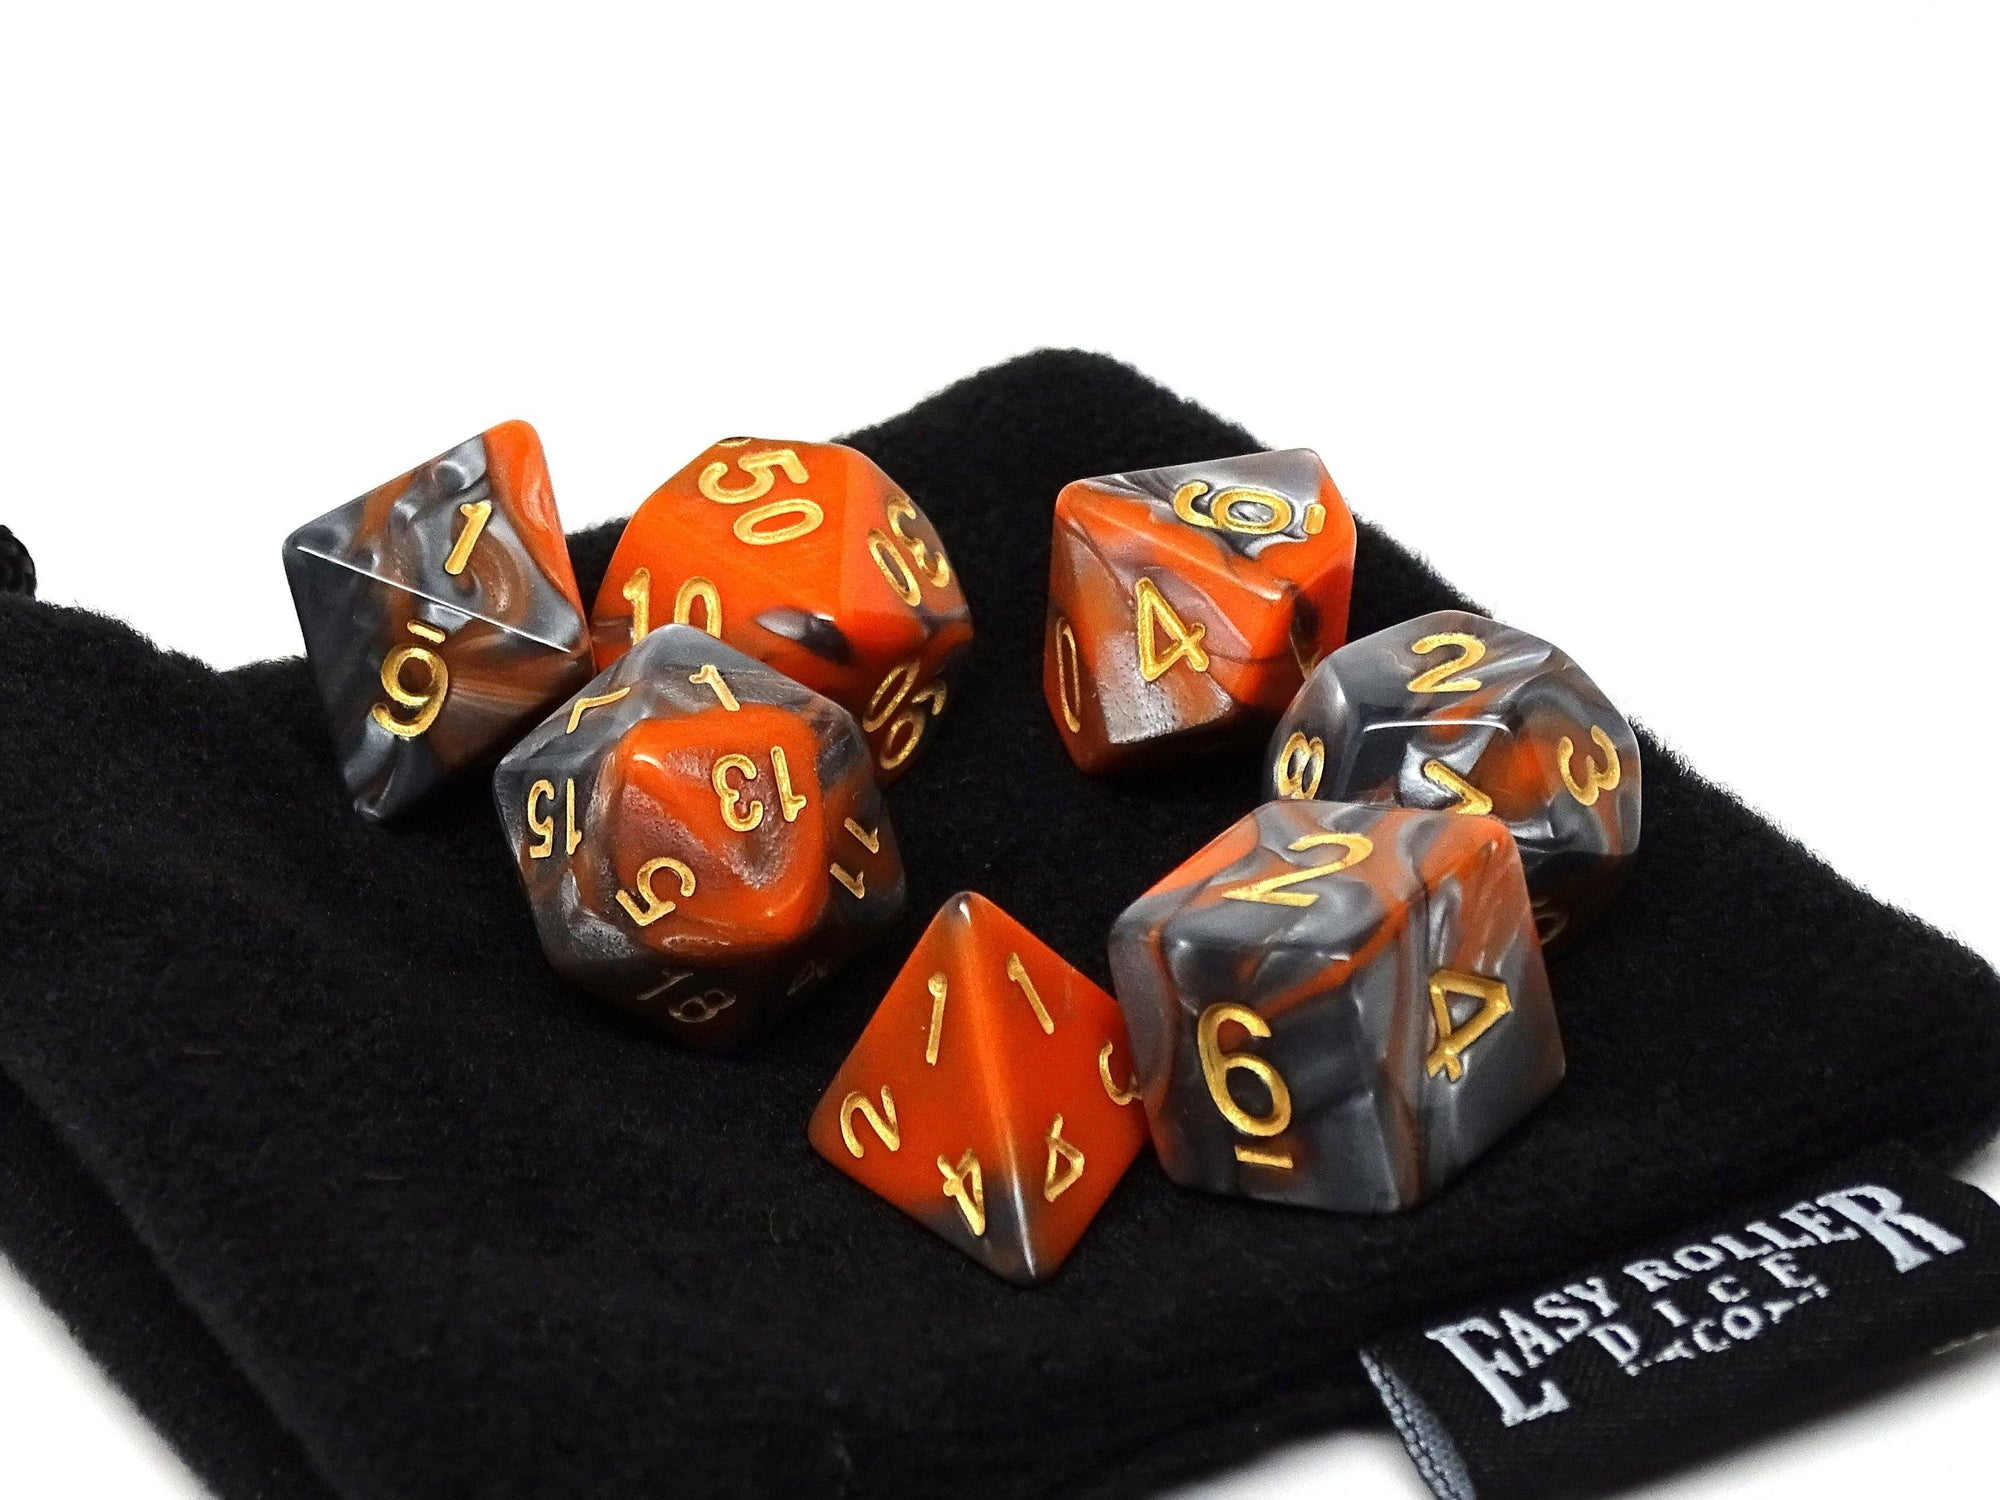 Orange and Grey Granite Dice Collection - 7 Piece Set